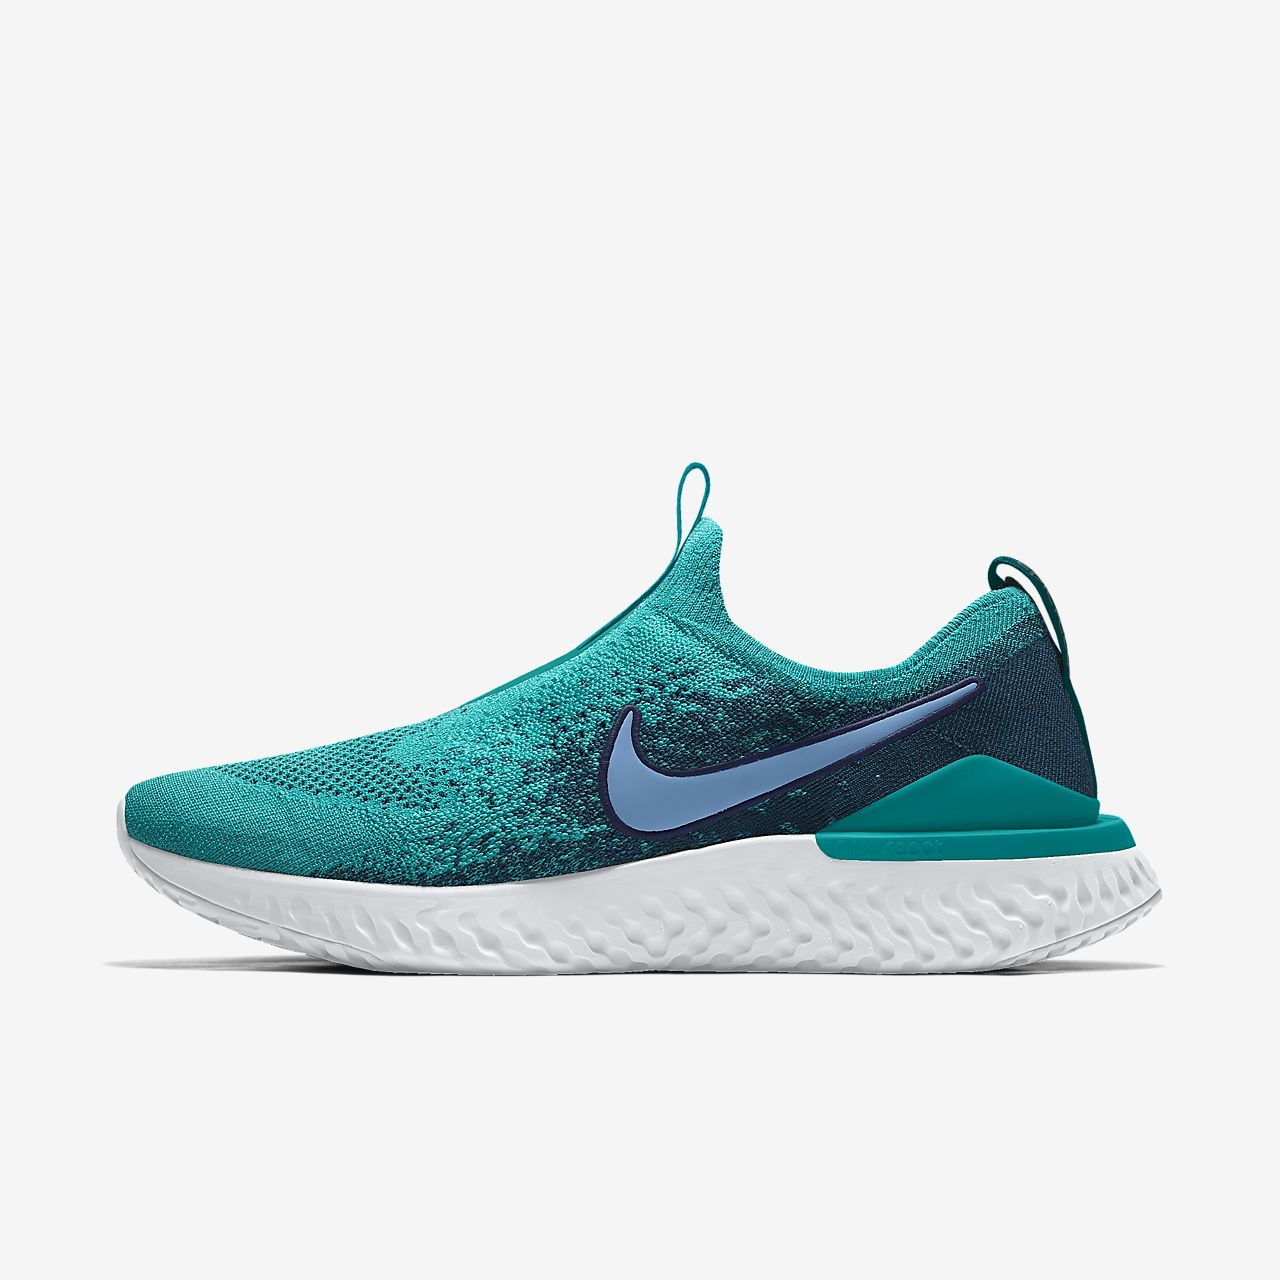 Chaussure de running personnalisable Nike Epic Phantom React Flyknit By You pour Femme